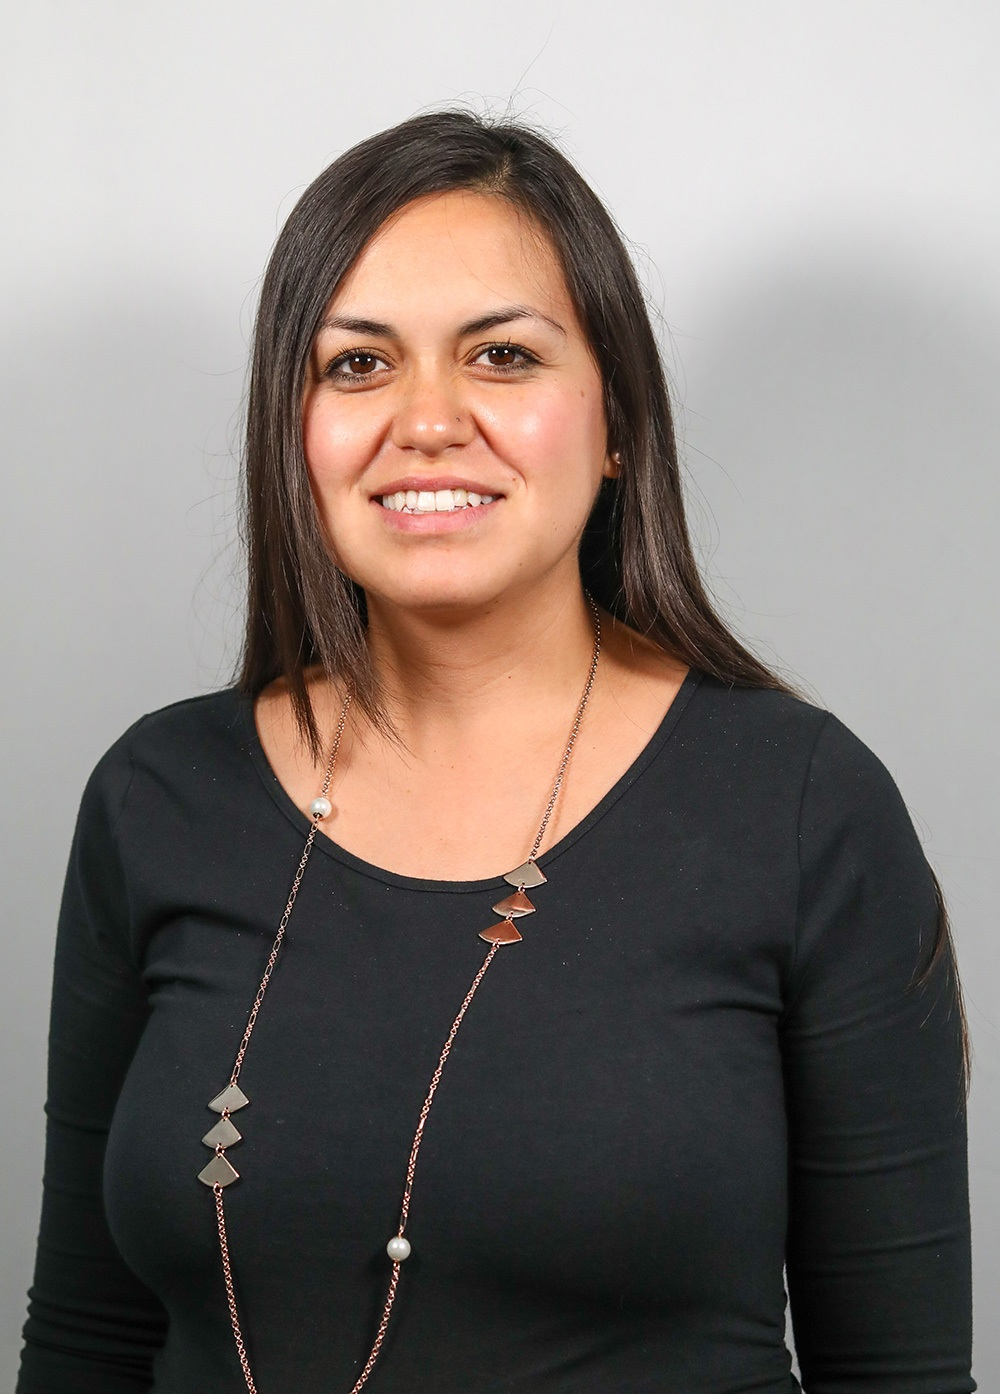 Headshot of Diana Prieto.